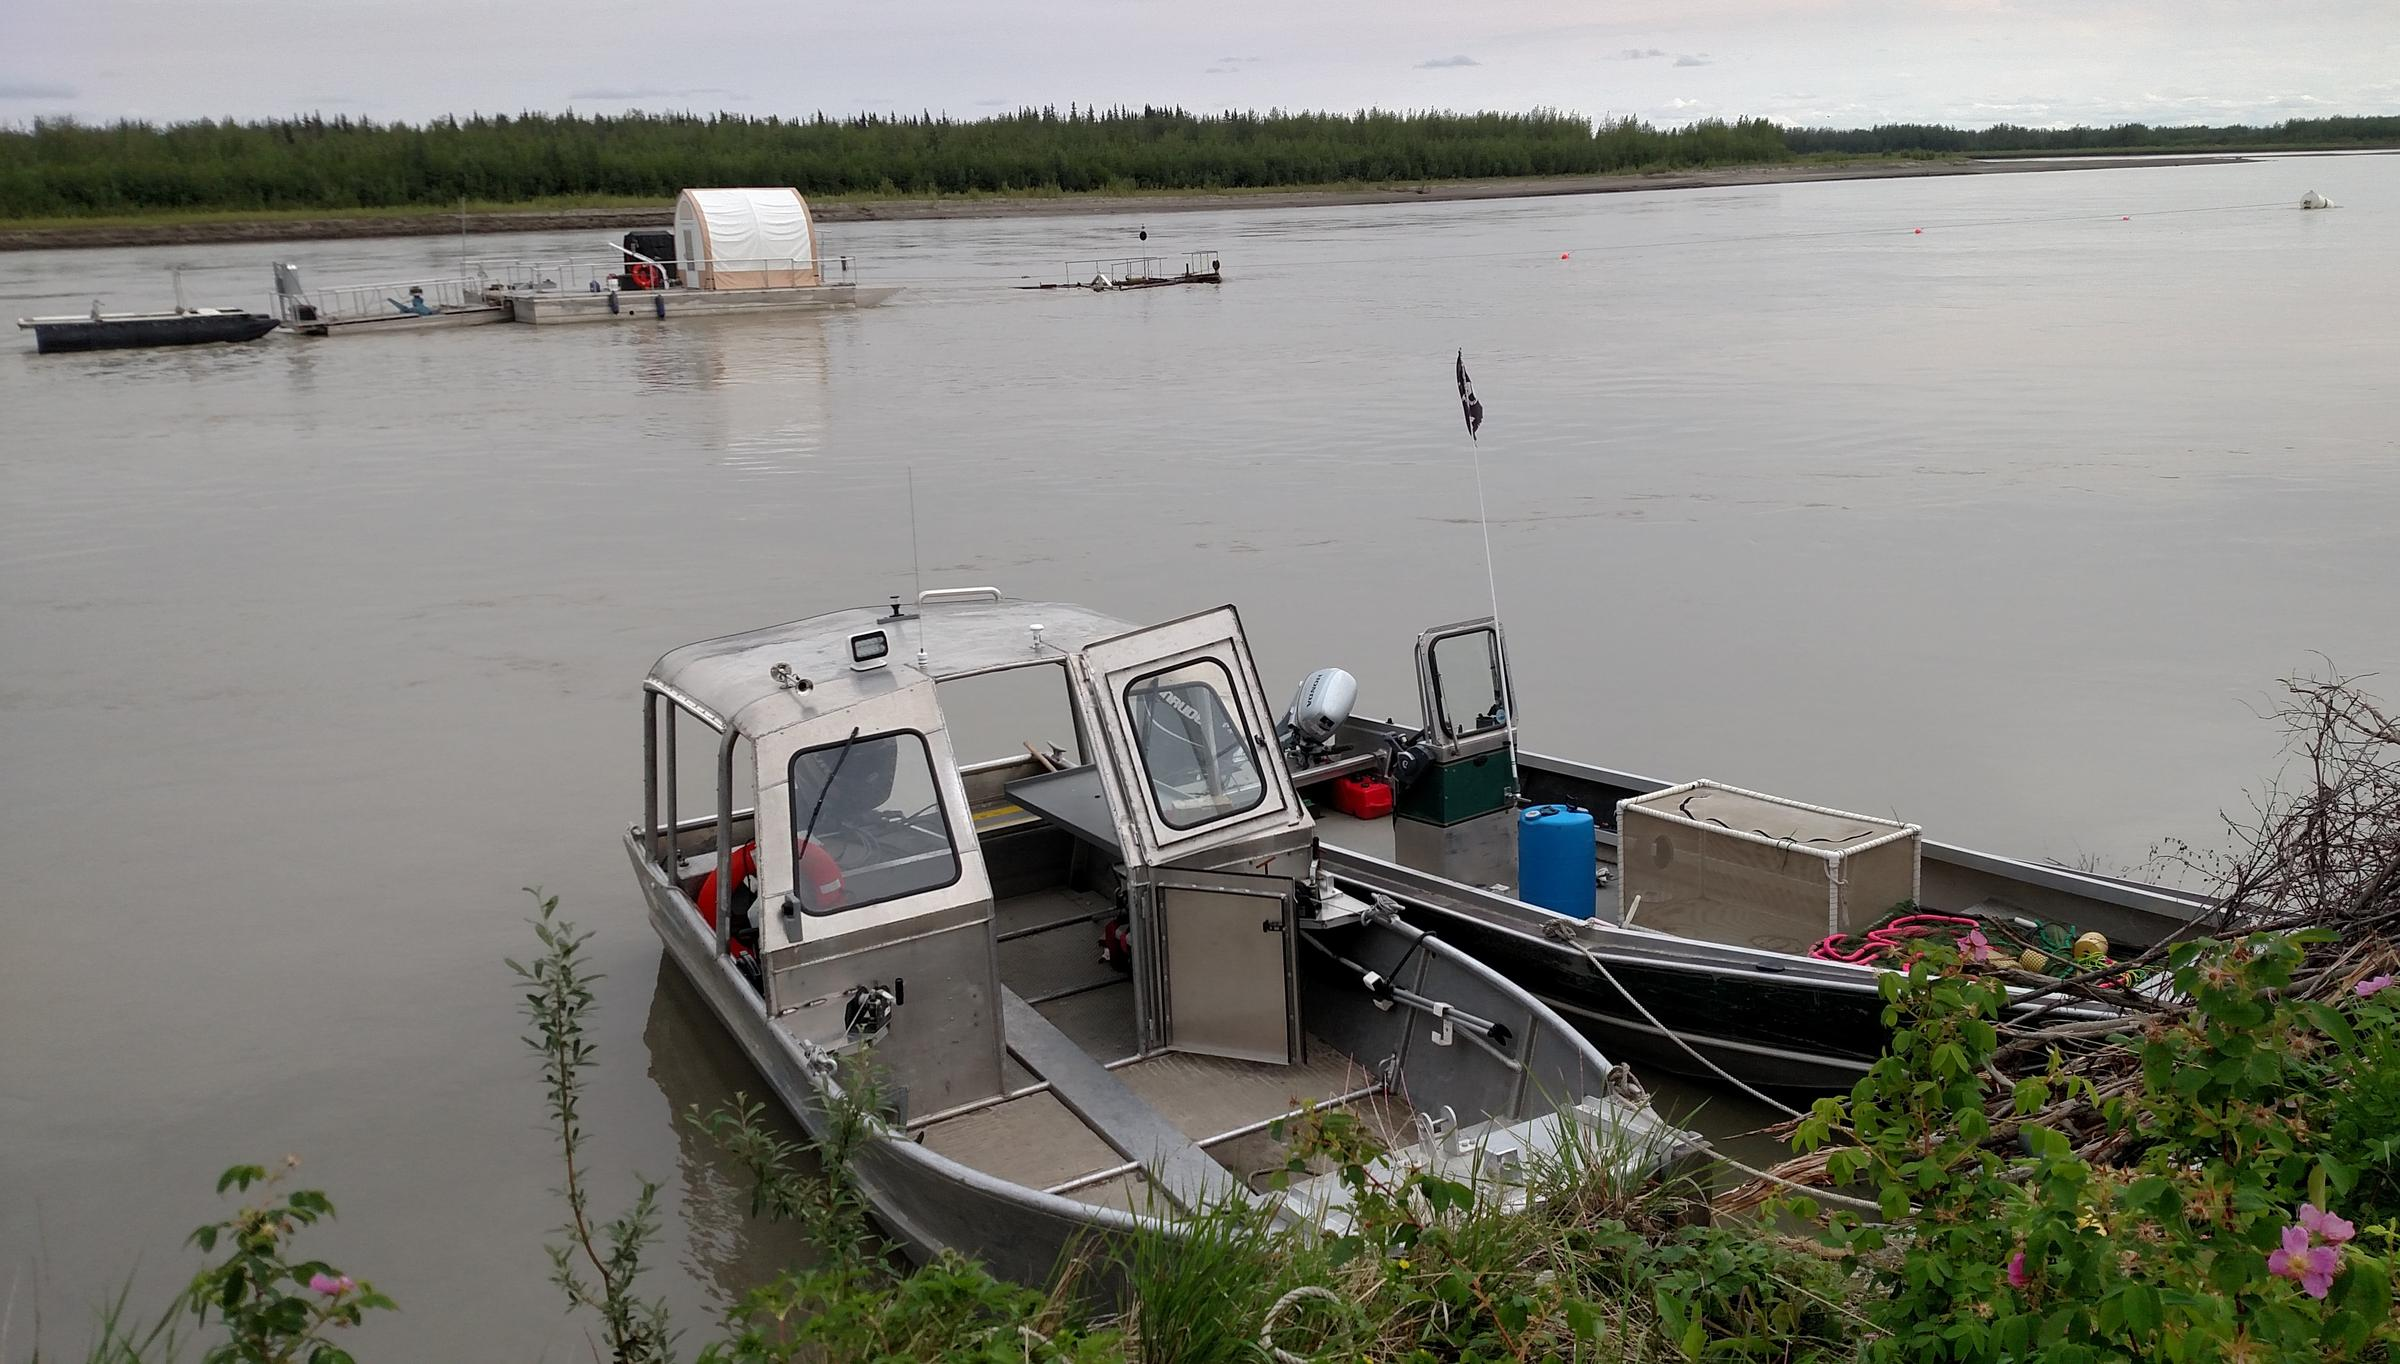 The hydrokinetic turbine being tested by UAF in Nenana is suspended into the Tanana River from the middle of three platforms, at left. The bouy in the upper right marks the point where the barges are anchored to the river bottom. The debris diverter is located between the bouy and barges. (Photo by Tim Ellis/KUAC)